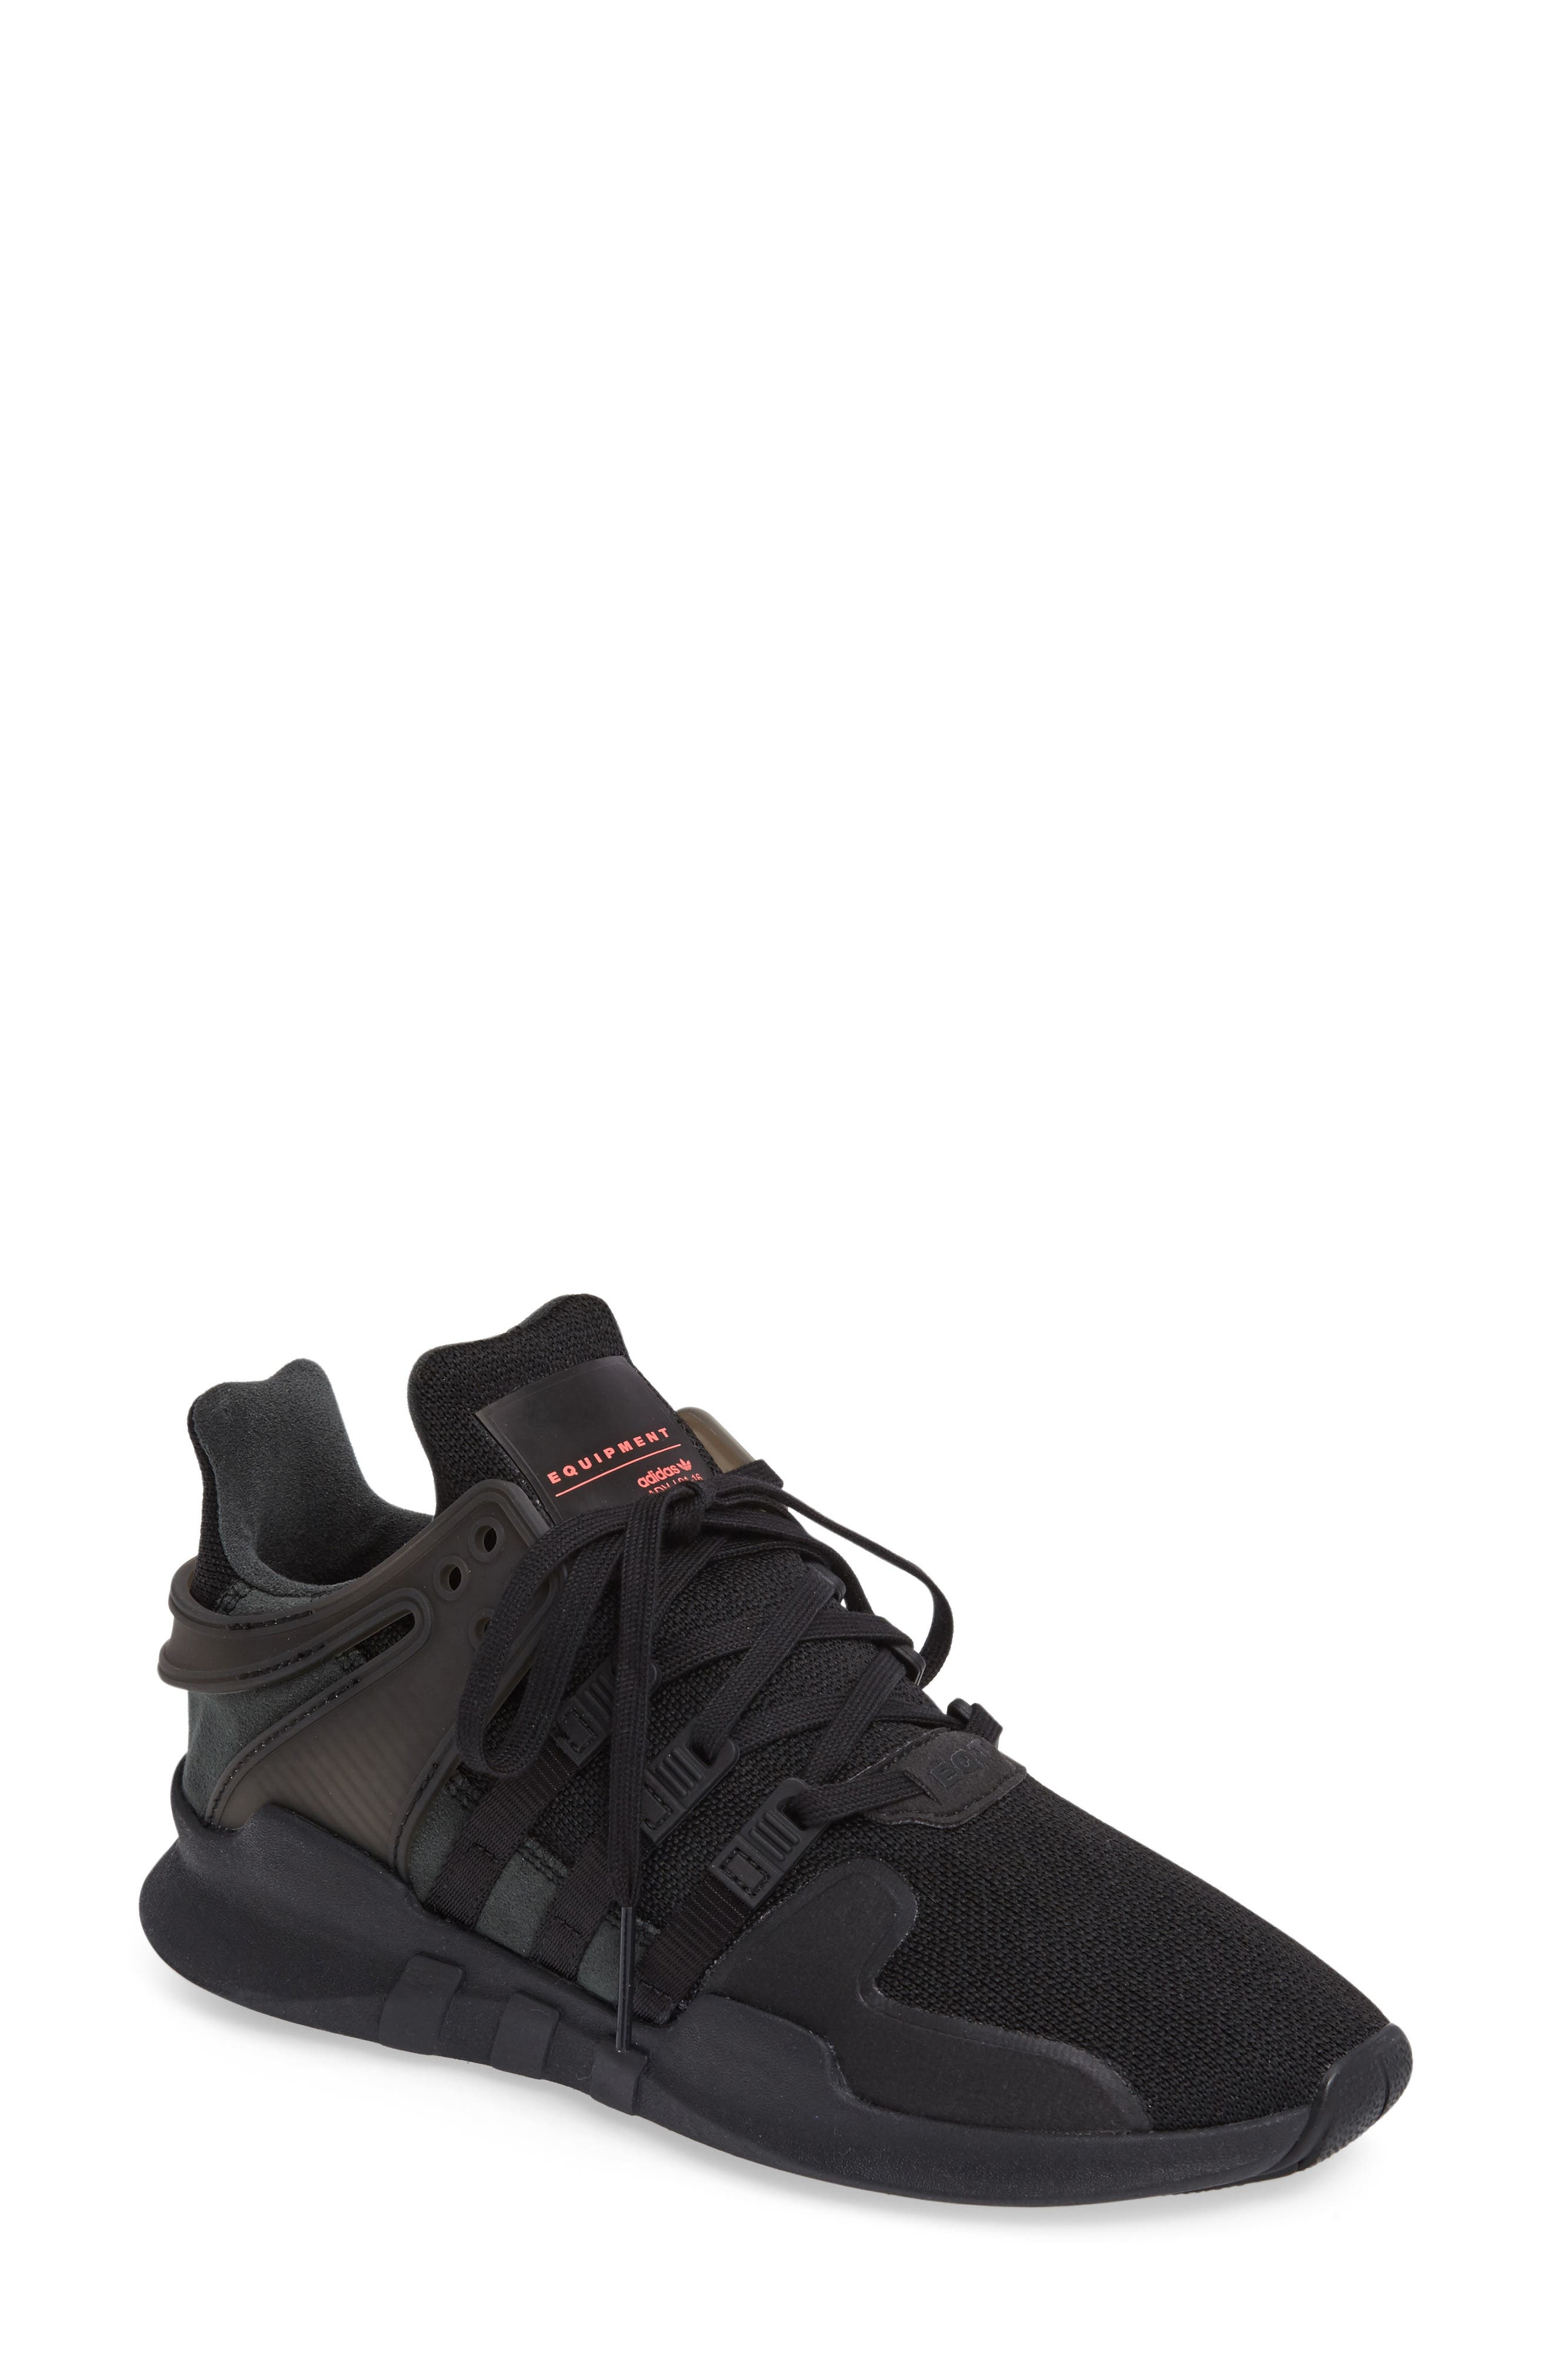 Equipment Support ADV Sneaker,                             Main thumbnail 1, color,                             001